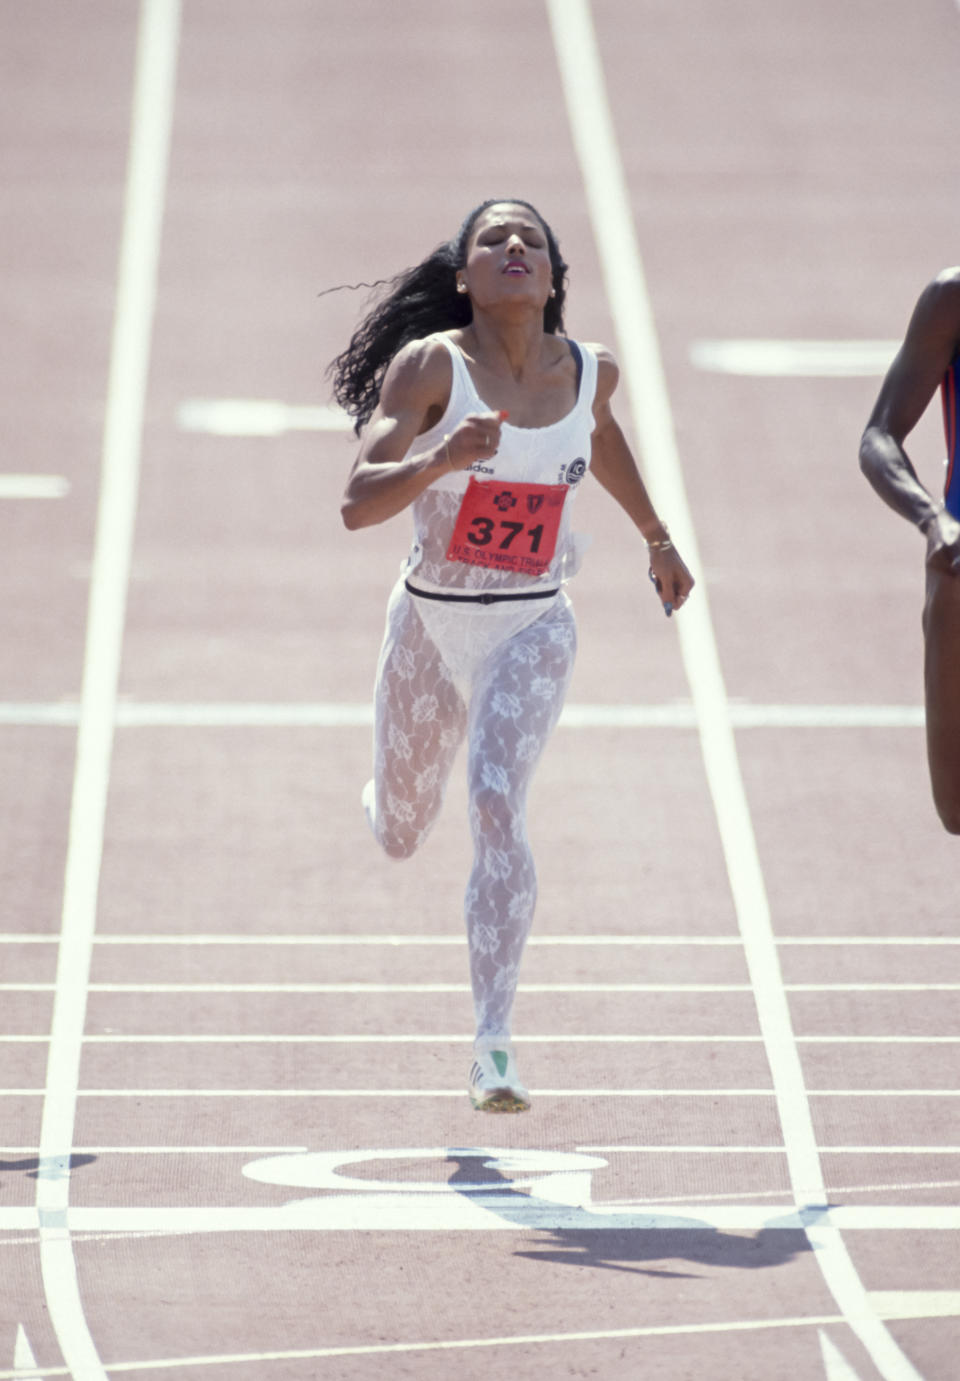 INDIANAPOLIS, IN - JULY 23:  Florence Griffith Joyner #371 of the USA competes in the final of the Women's 200 meter race of the 1988 USA Track and Field Olympic Trials held July 22, 1988 at the IU Michael A. Carroll Track & Soccer Stadium in Indianapolis, Indiana.  (Photo by David Madison/Getty Images)